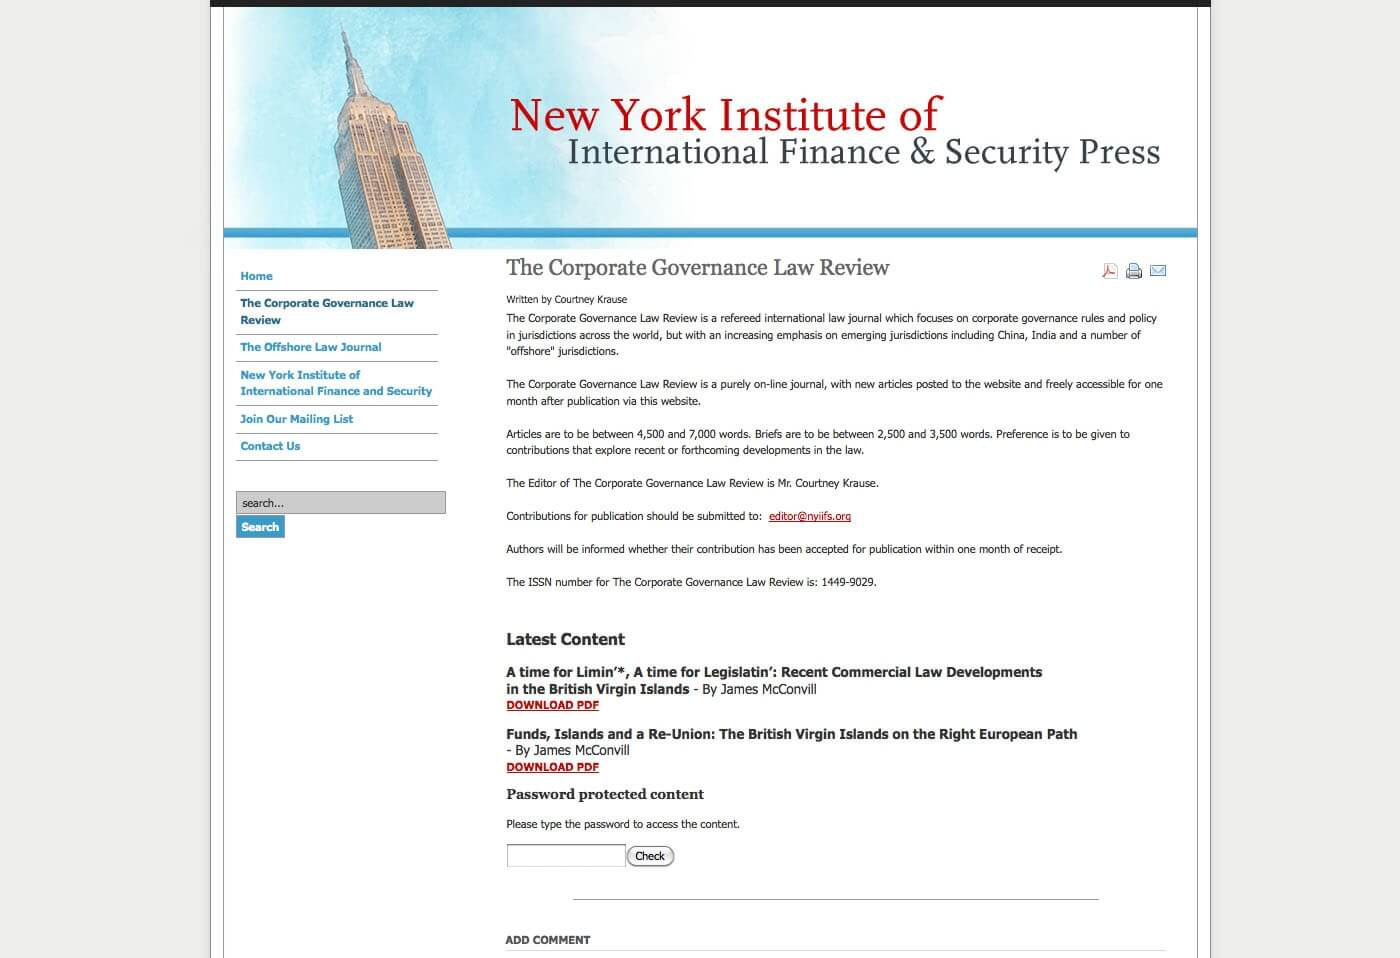 Able Video New York Institute of International Finance and Security Press Website 02